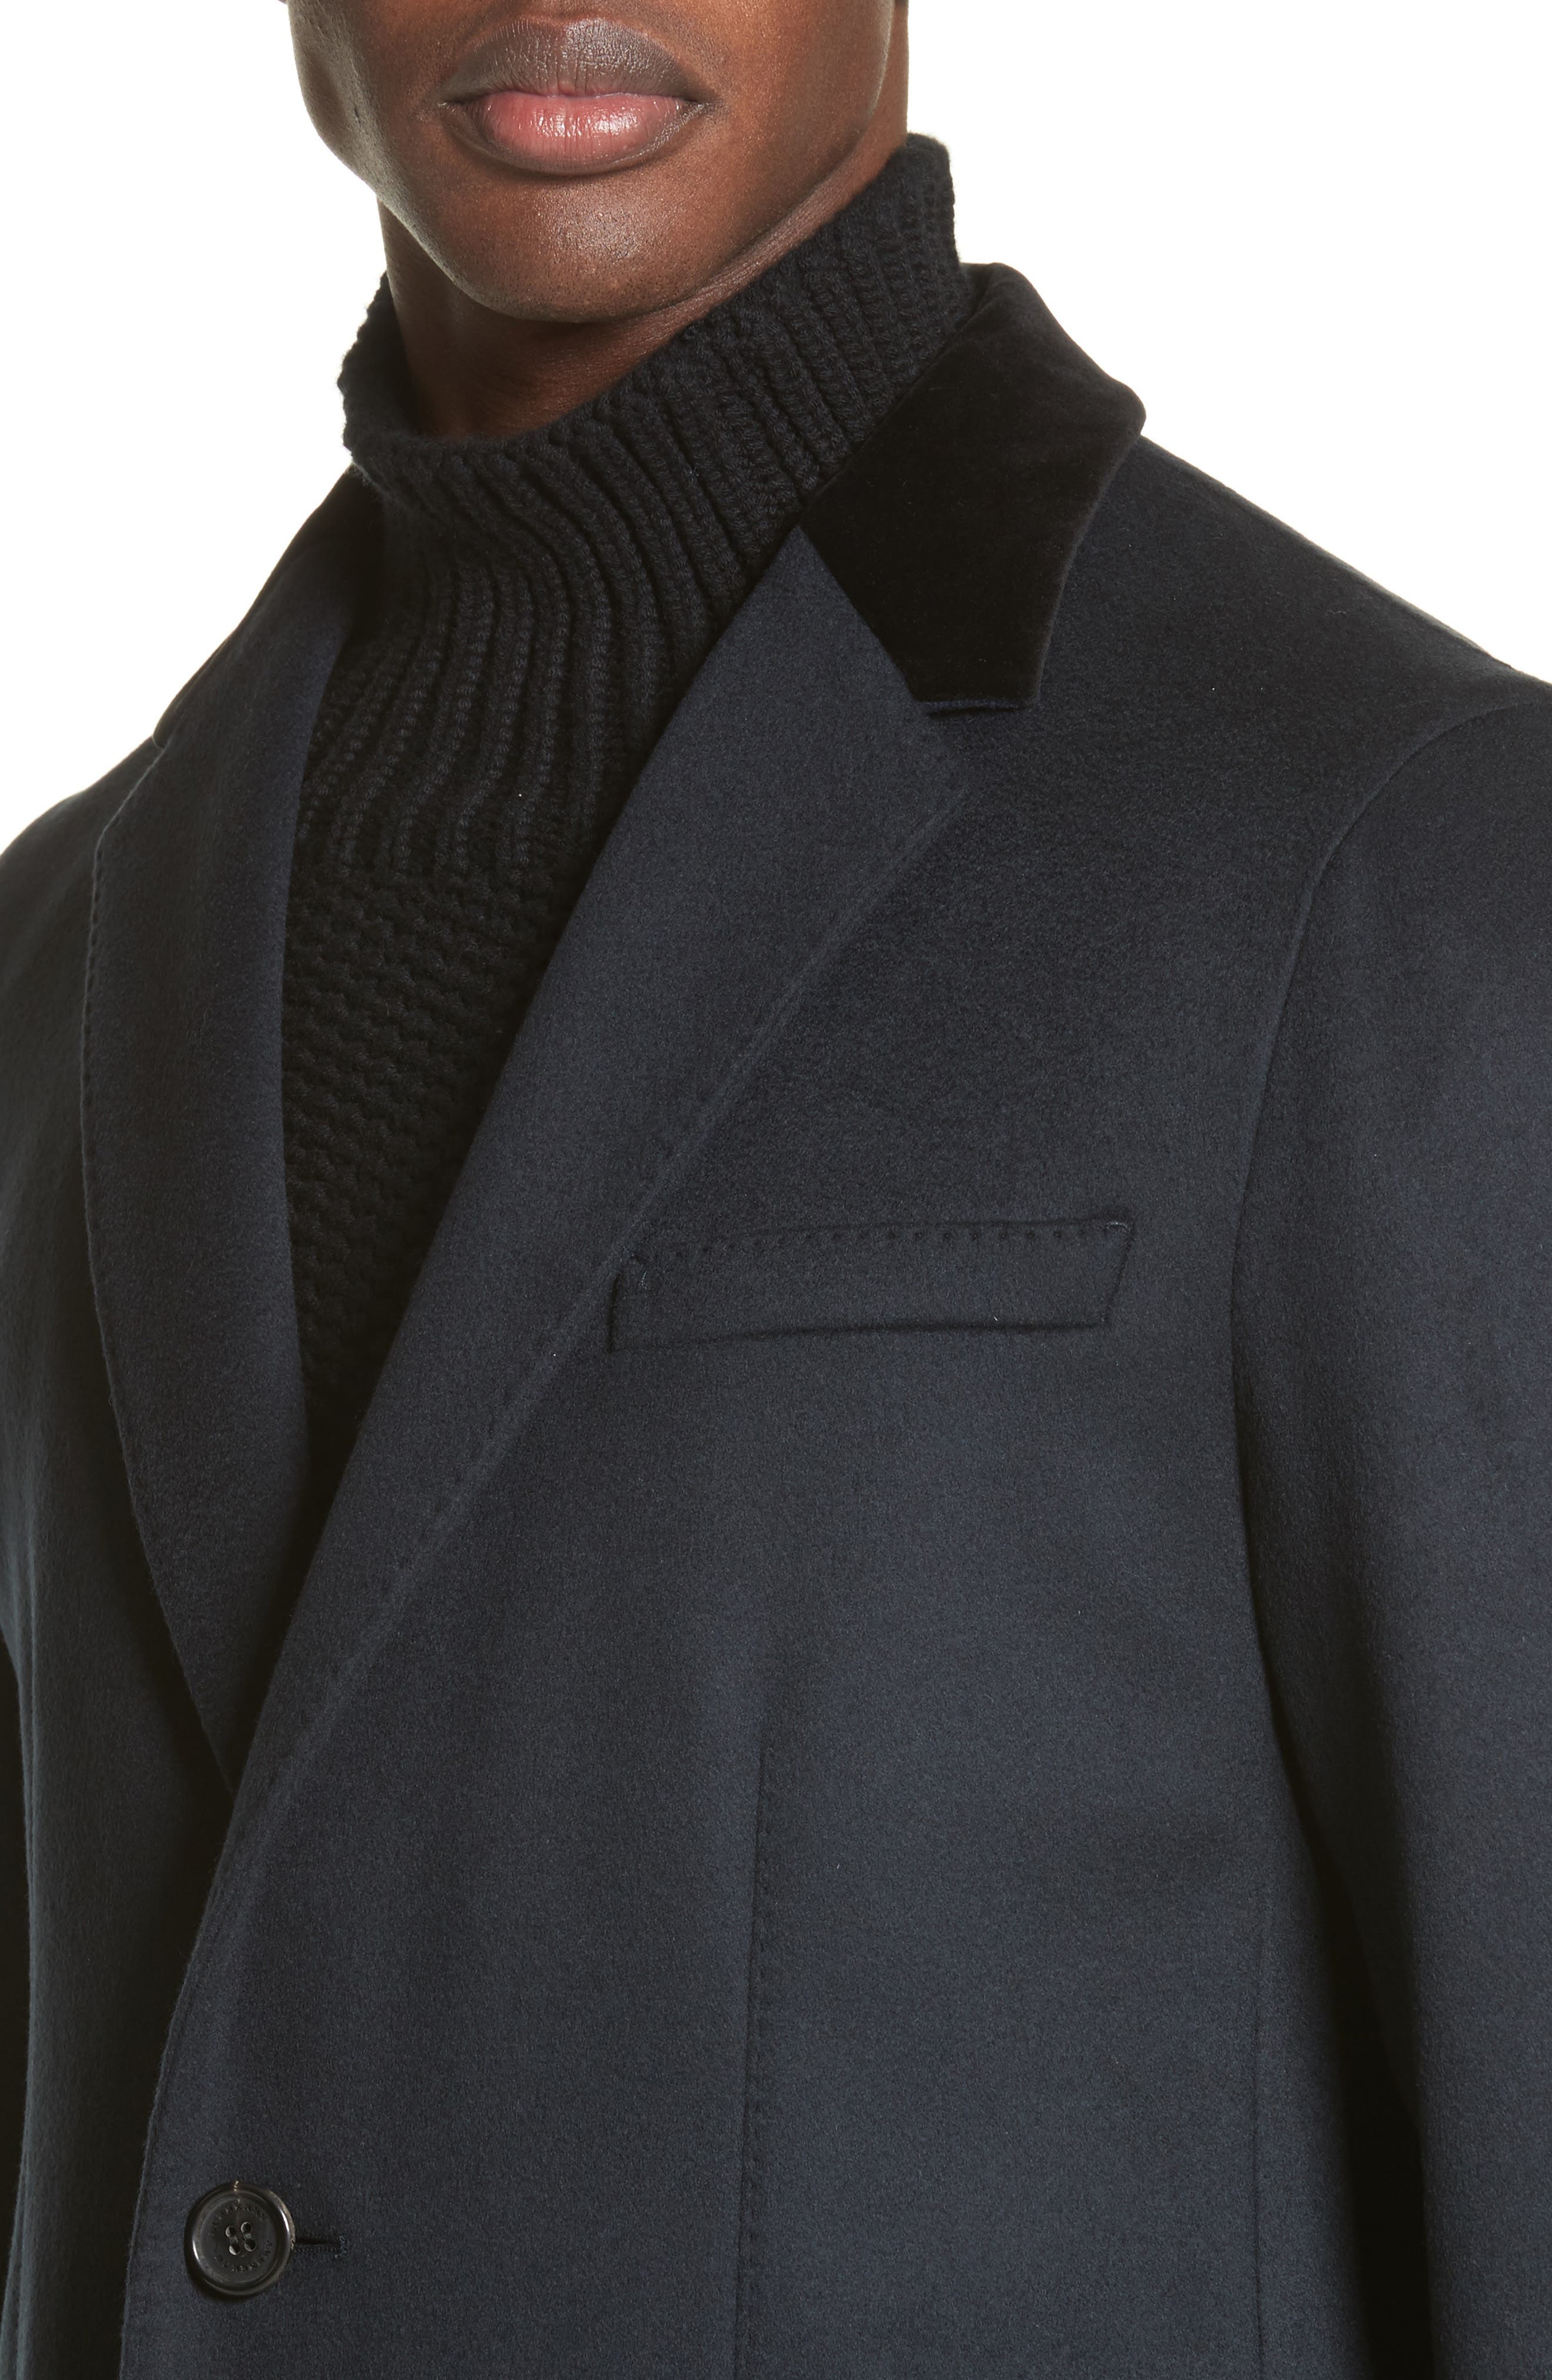 Flynn Wool & Cashmere Topcoat,                             Alternate thumbnail 4, color,                             410